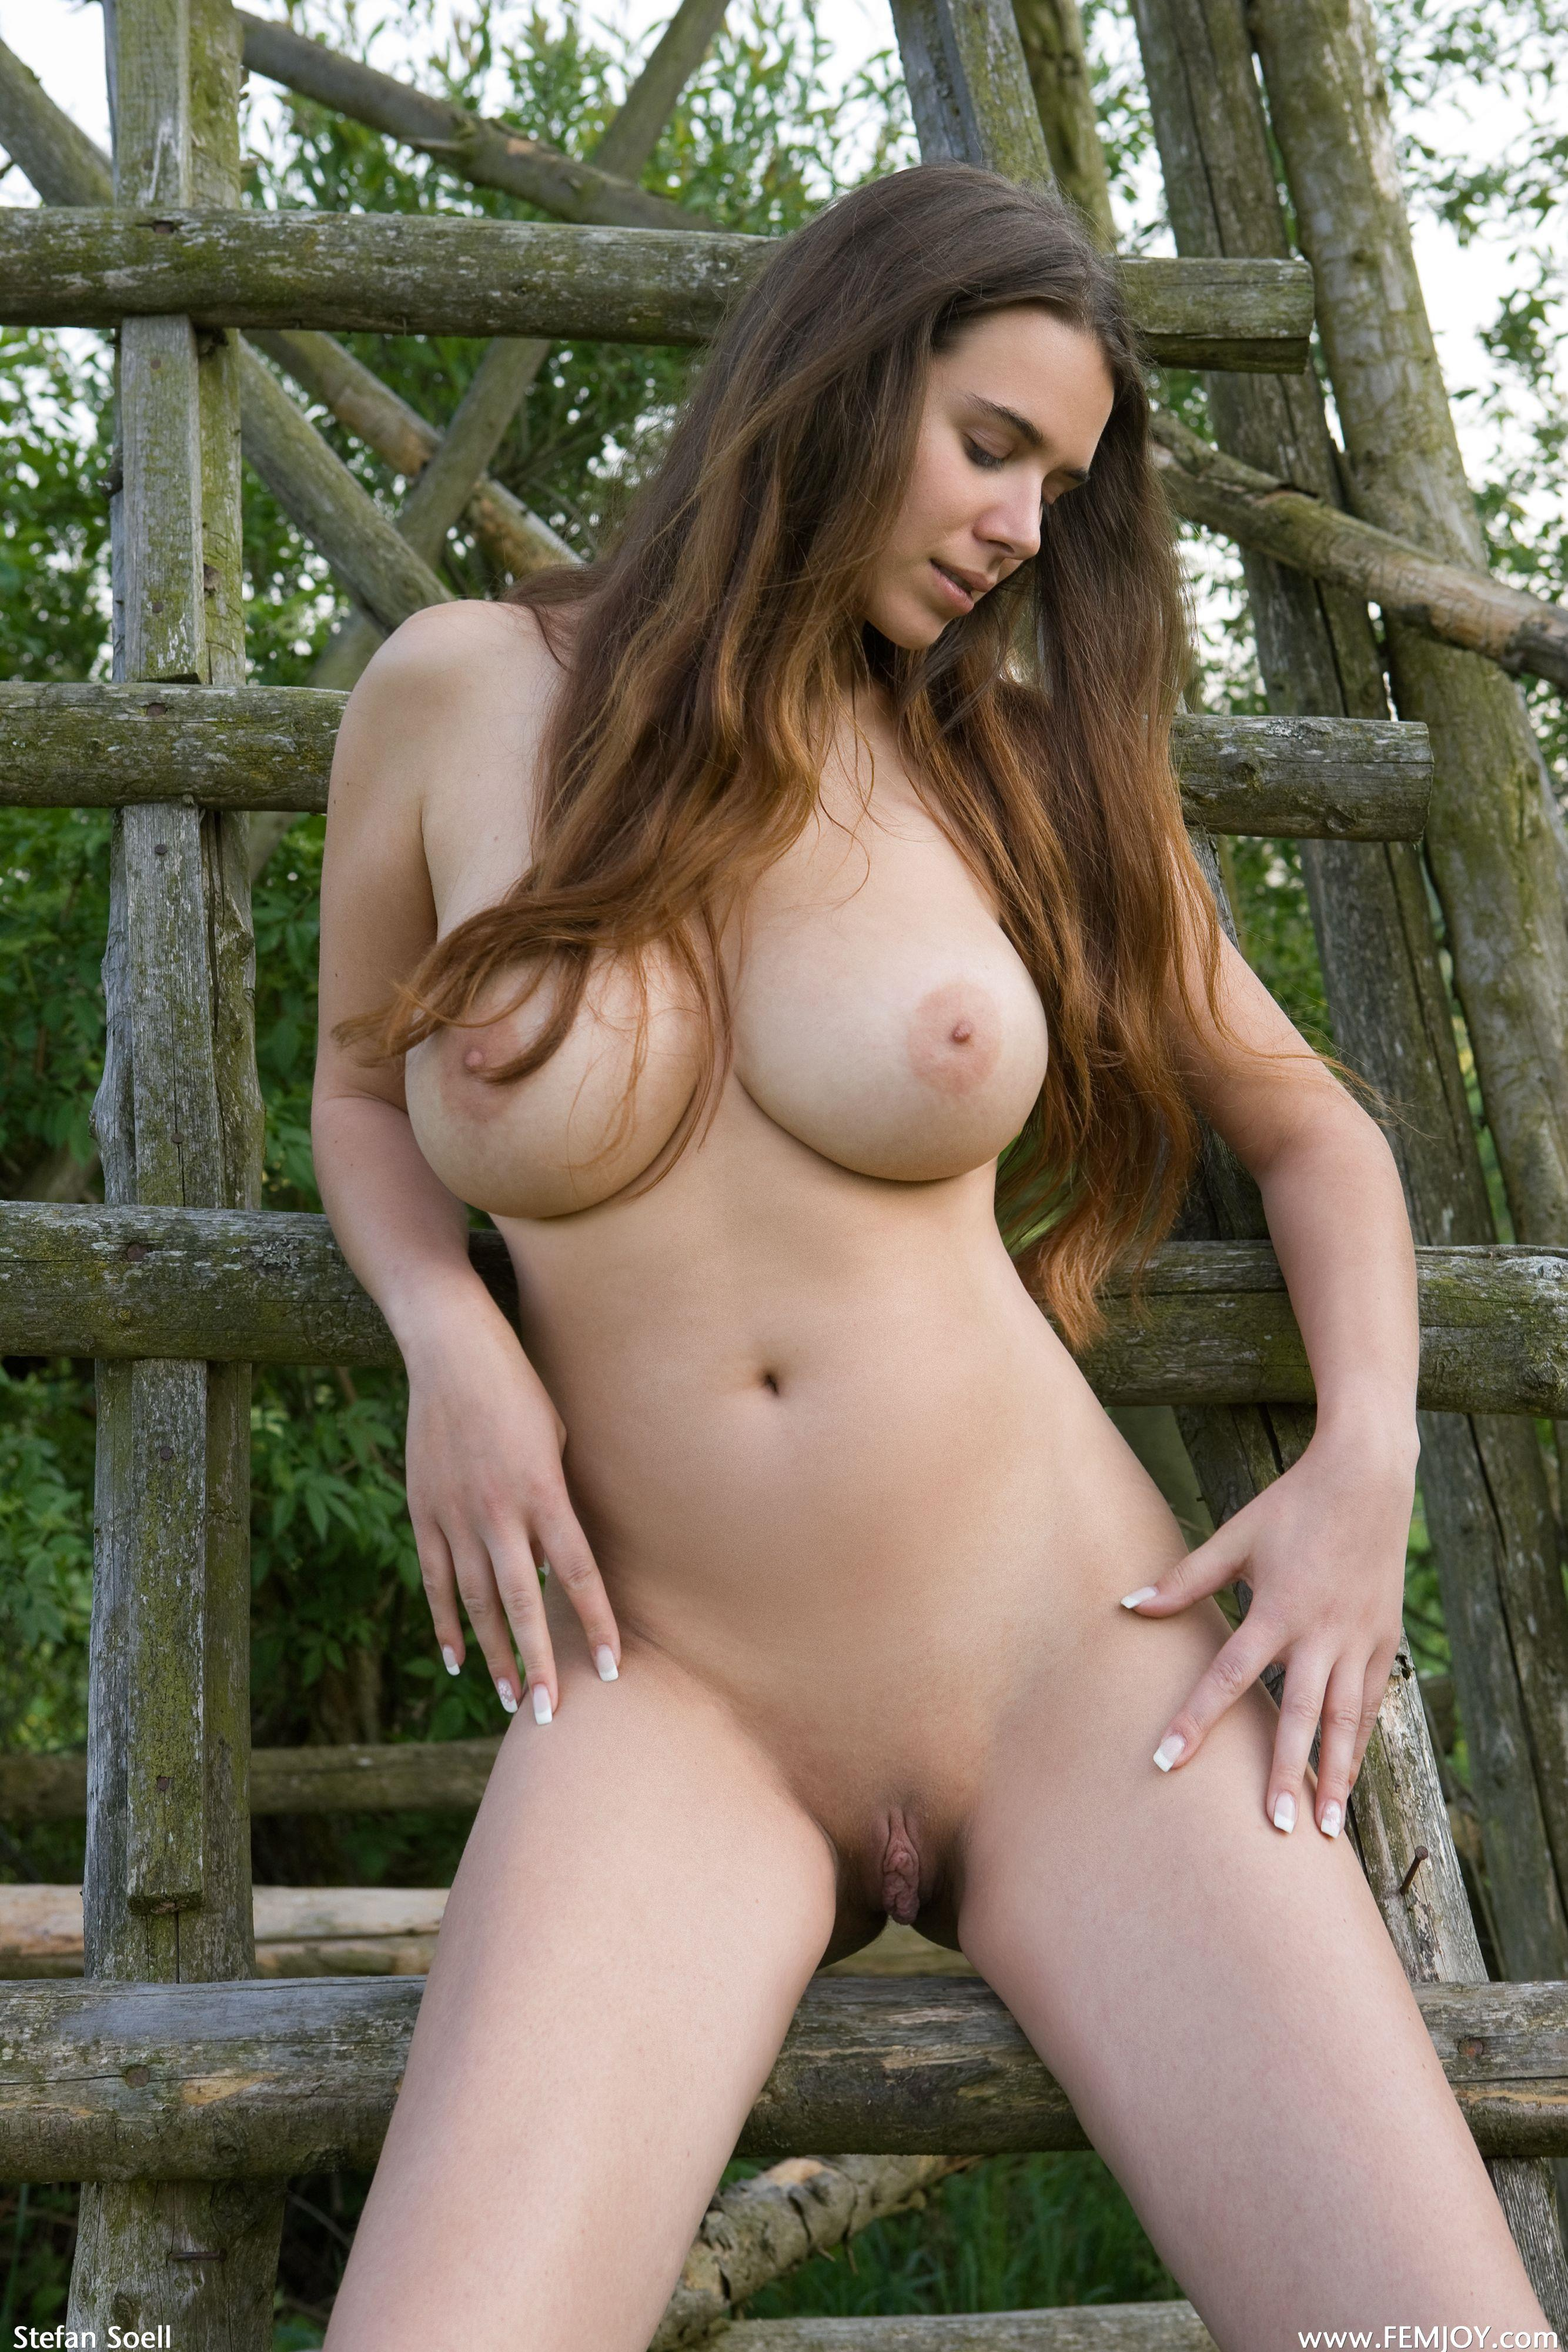 nude girls with cum on their boobs and face